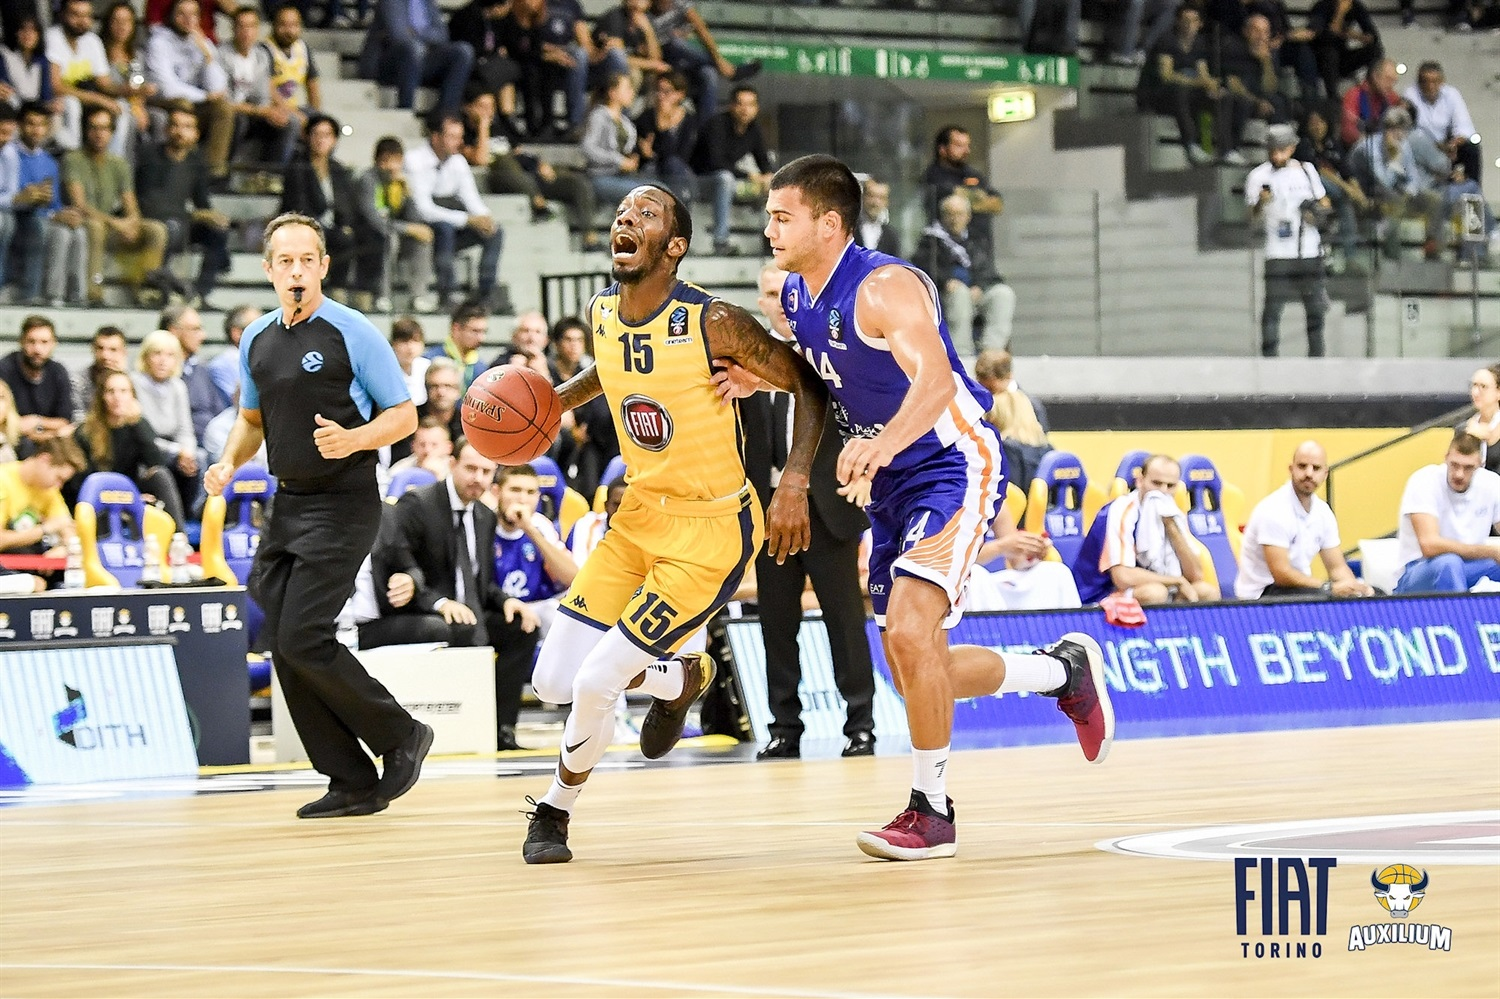 Tyshawn Taylor - Fiat Turin (photo Fiat Turin) - EC18